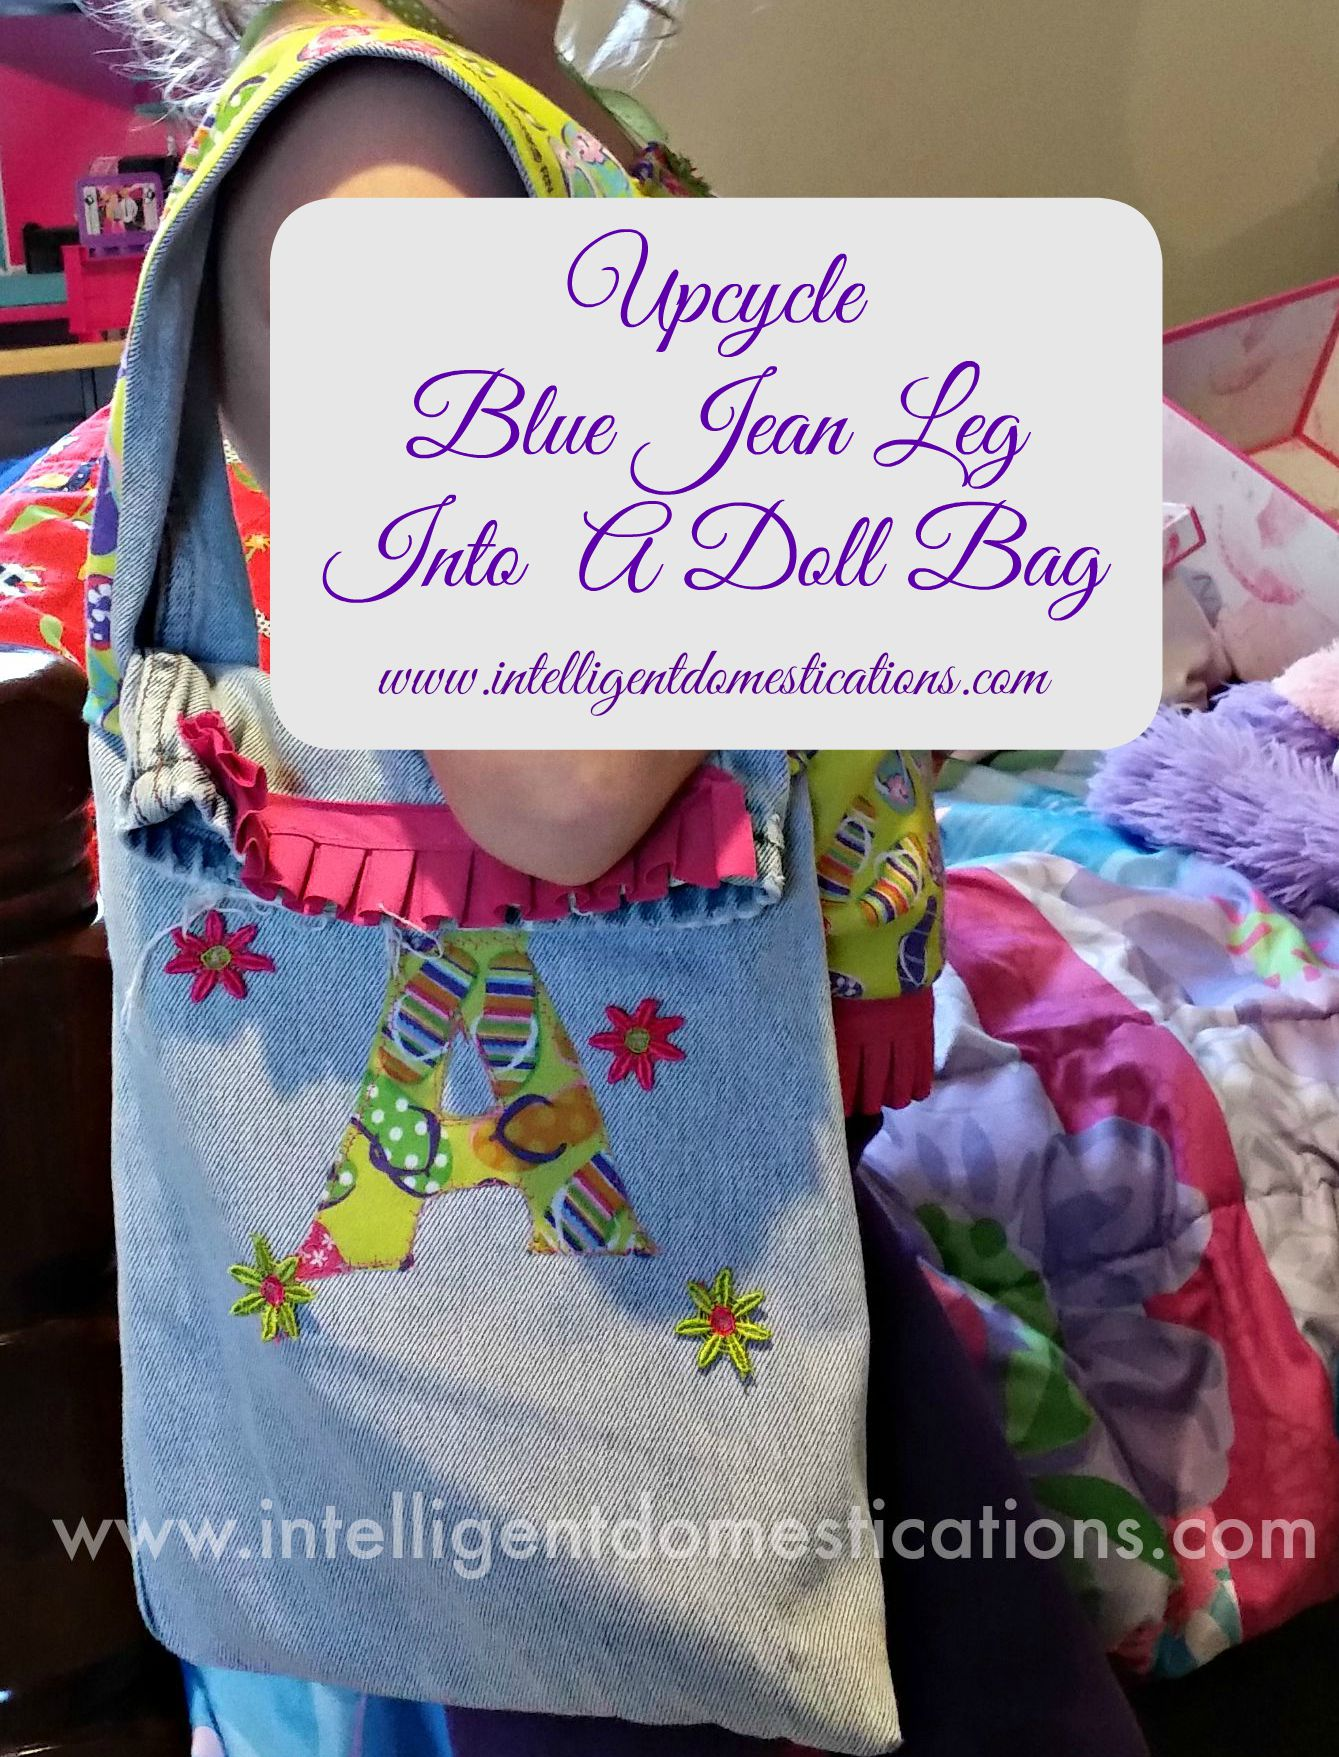 Upcycled Blue Jean Leg Into A Barbie Bag